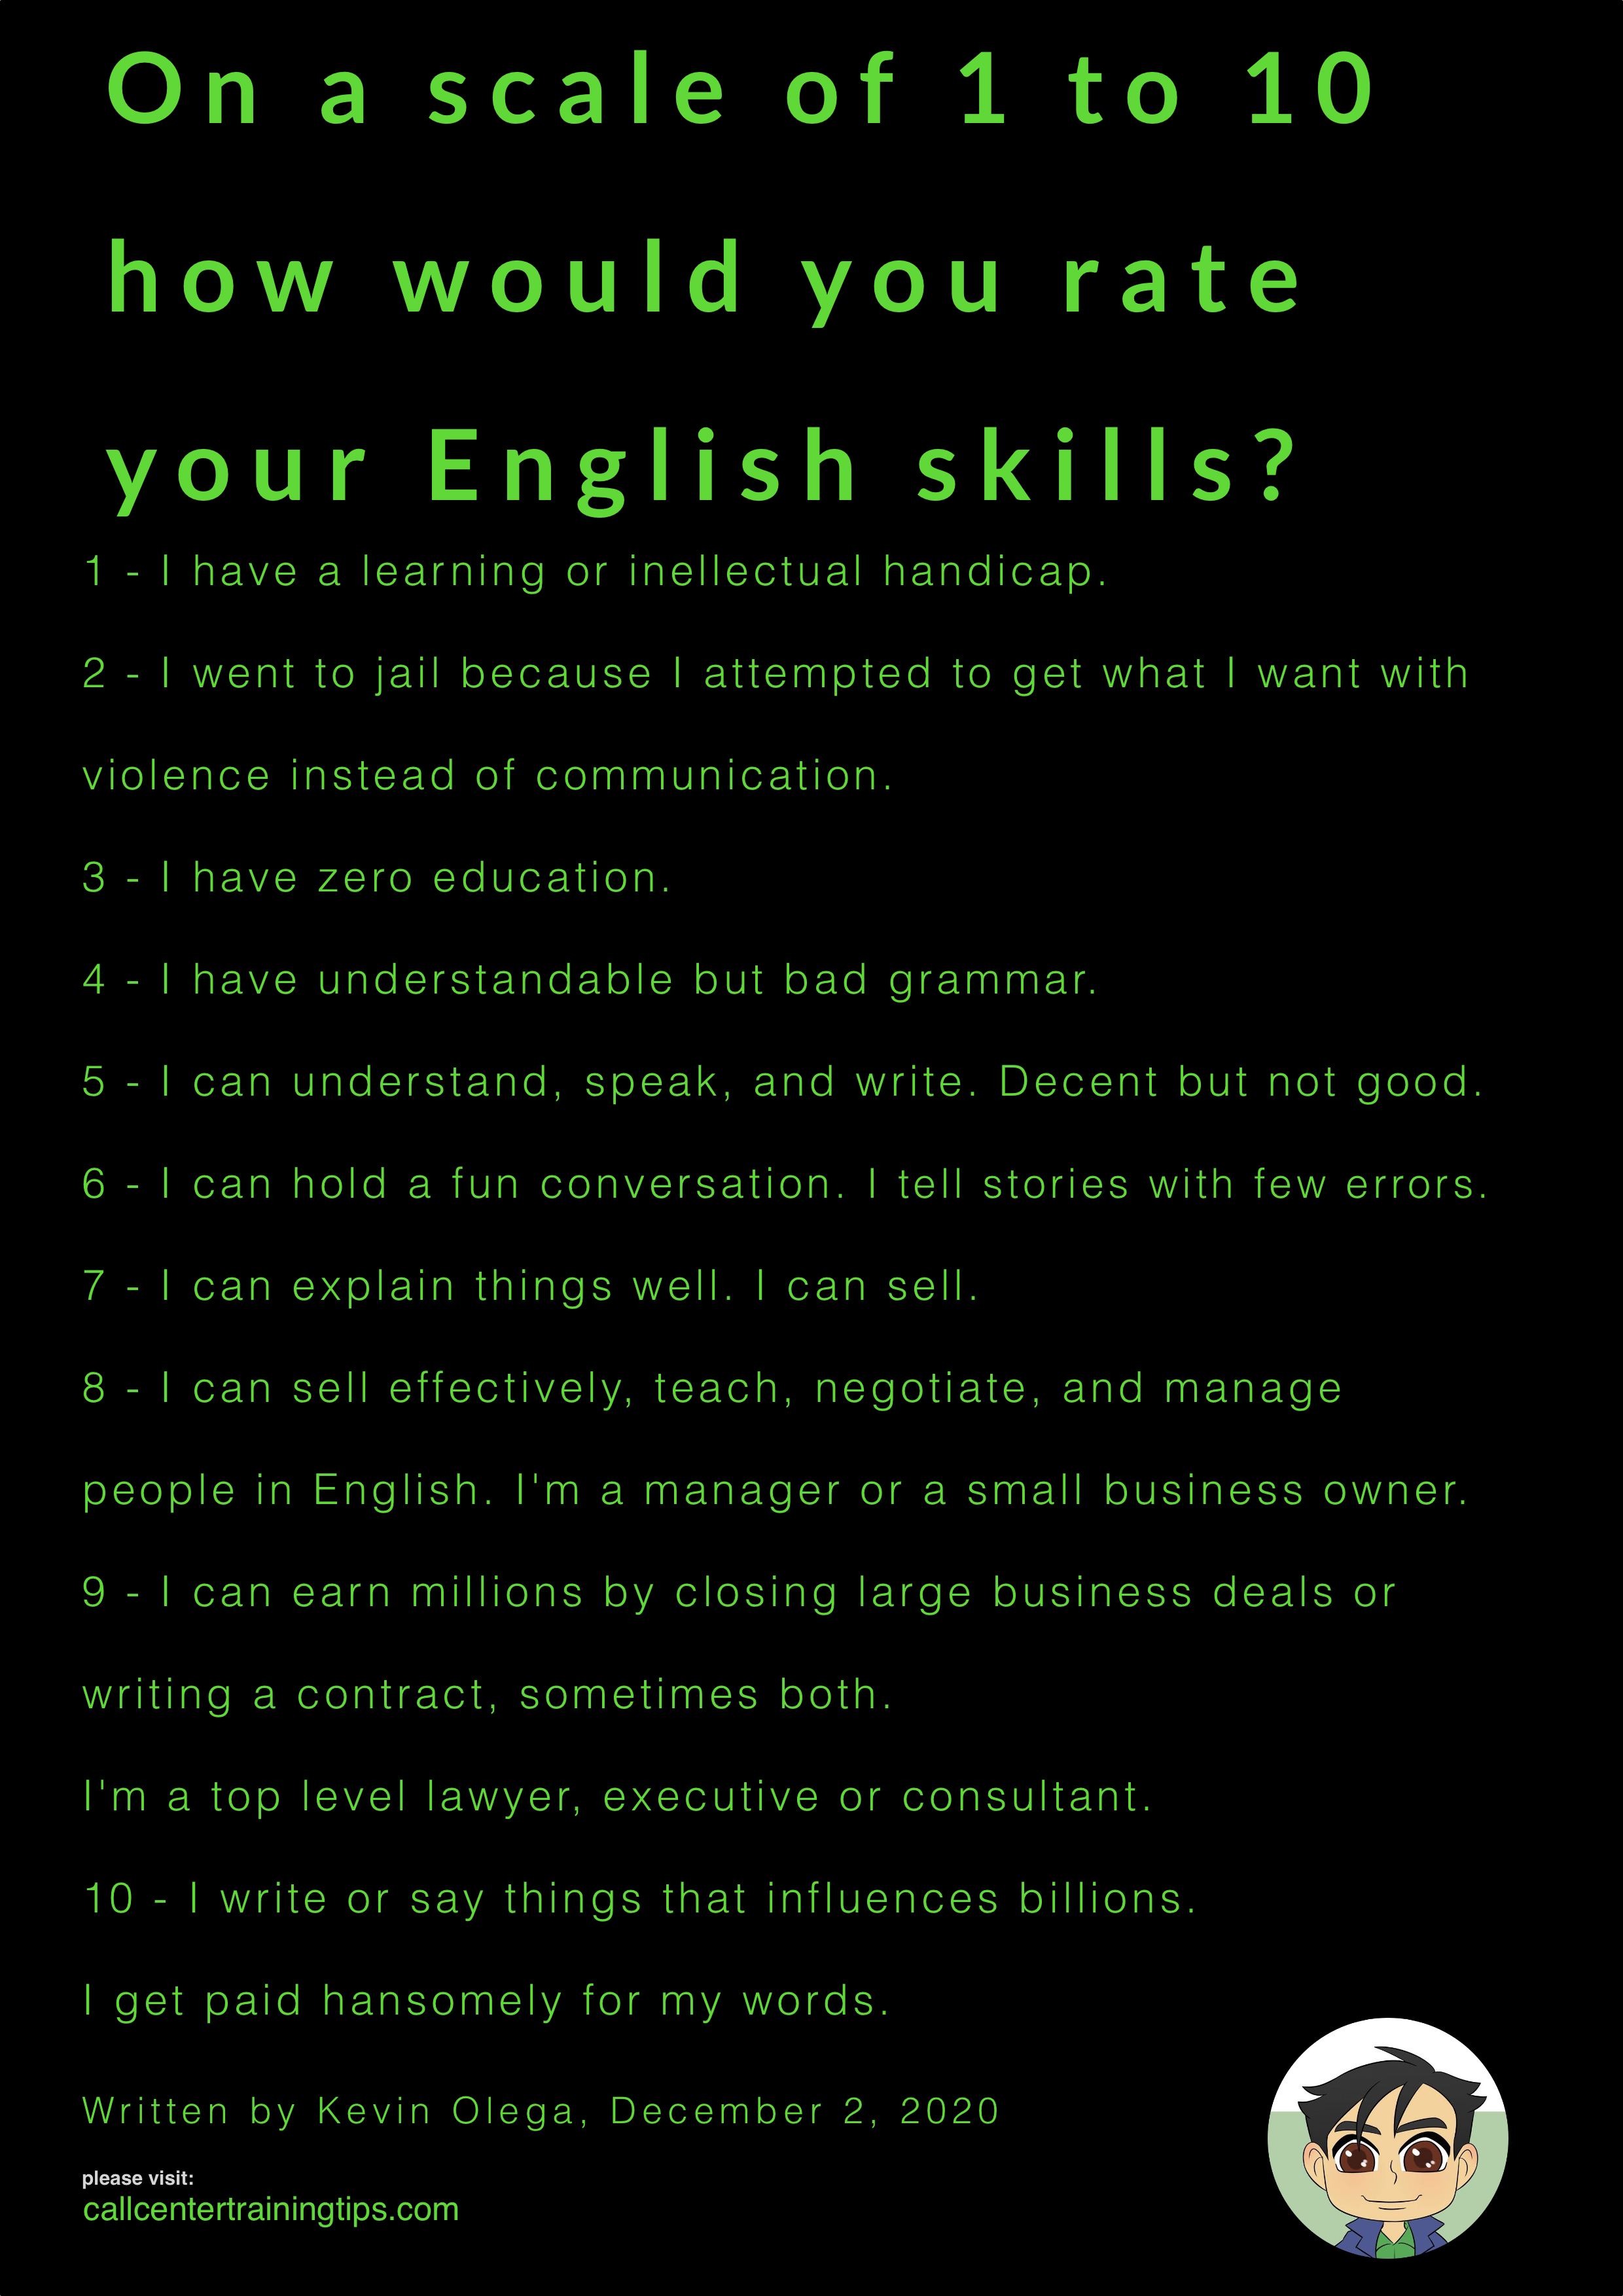 Rate Your English